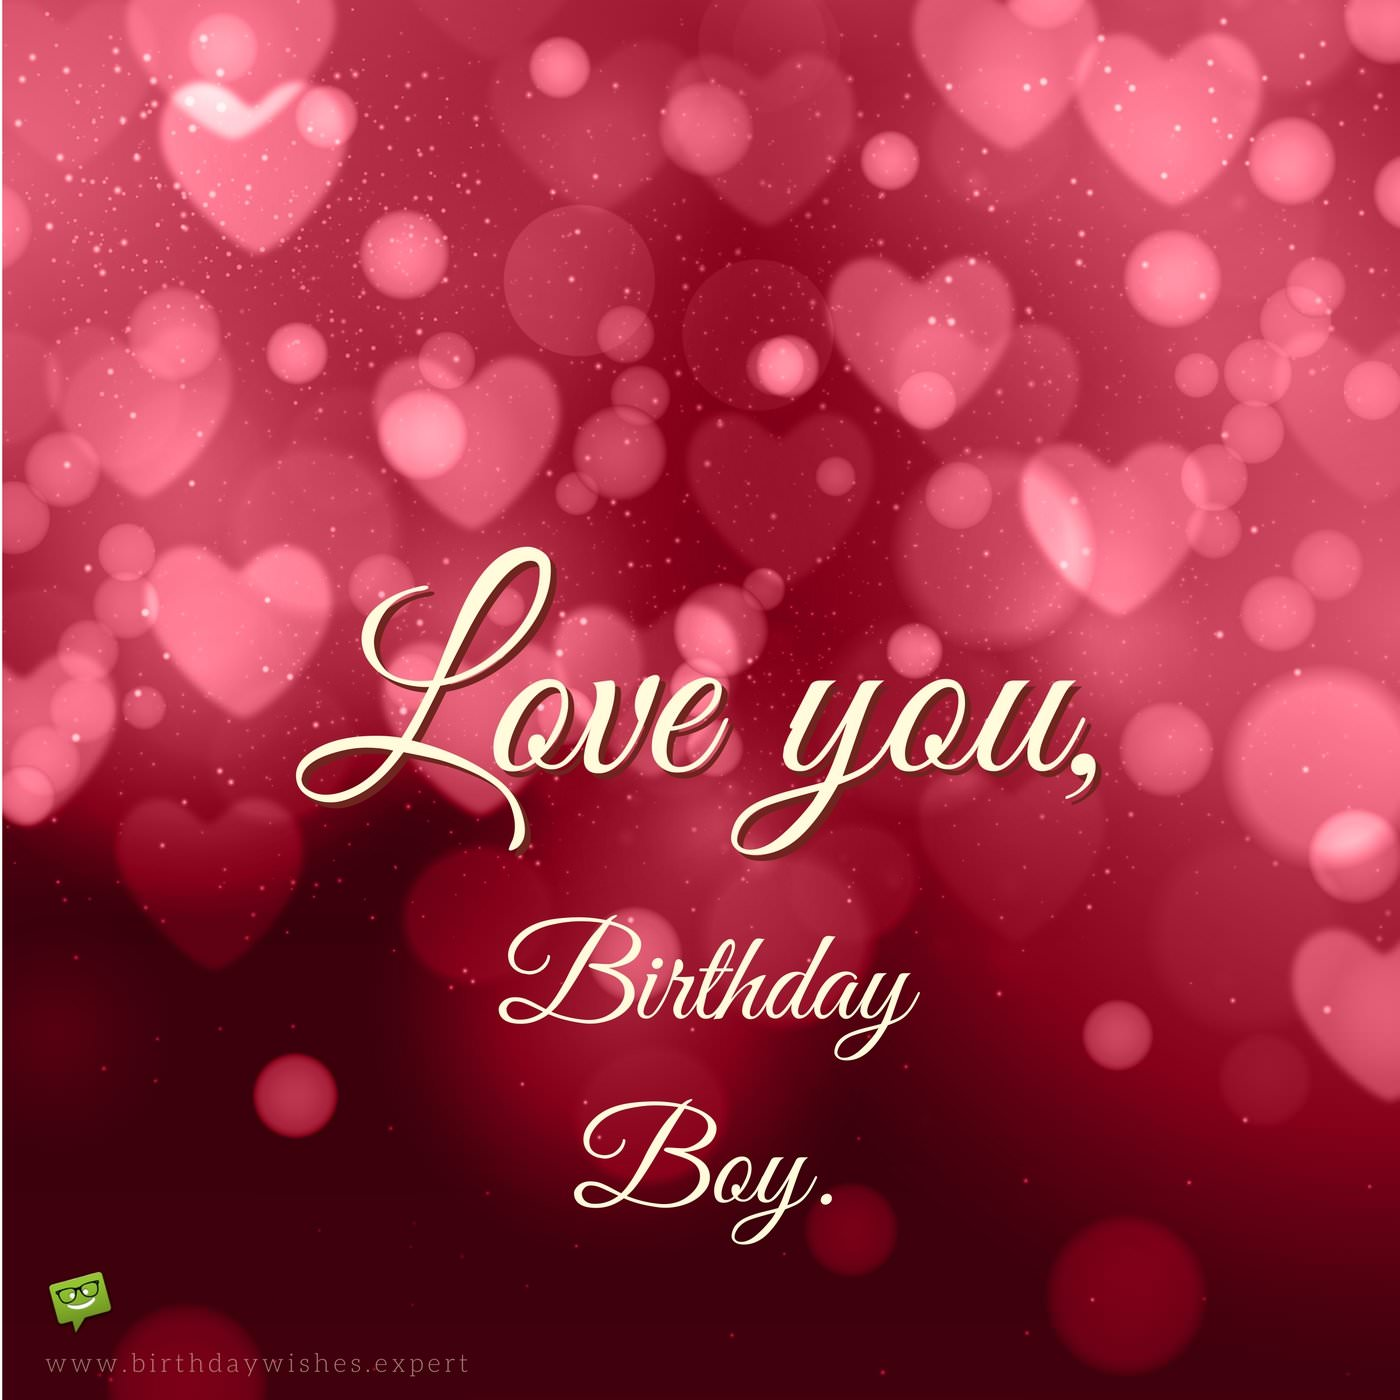 Smart, Funny And Sweet Birthday Wishes For Your Boyfriend